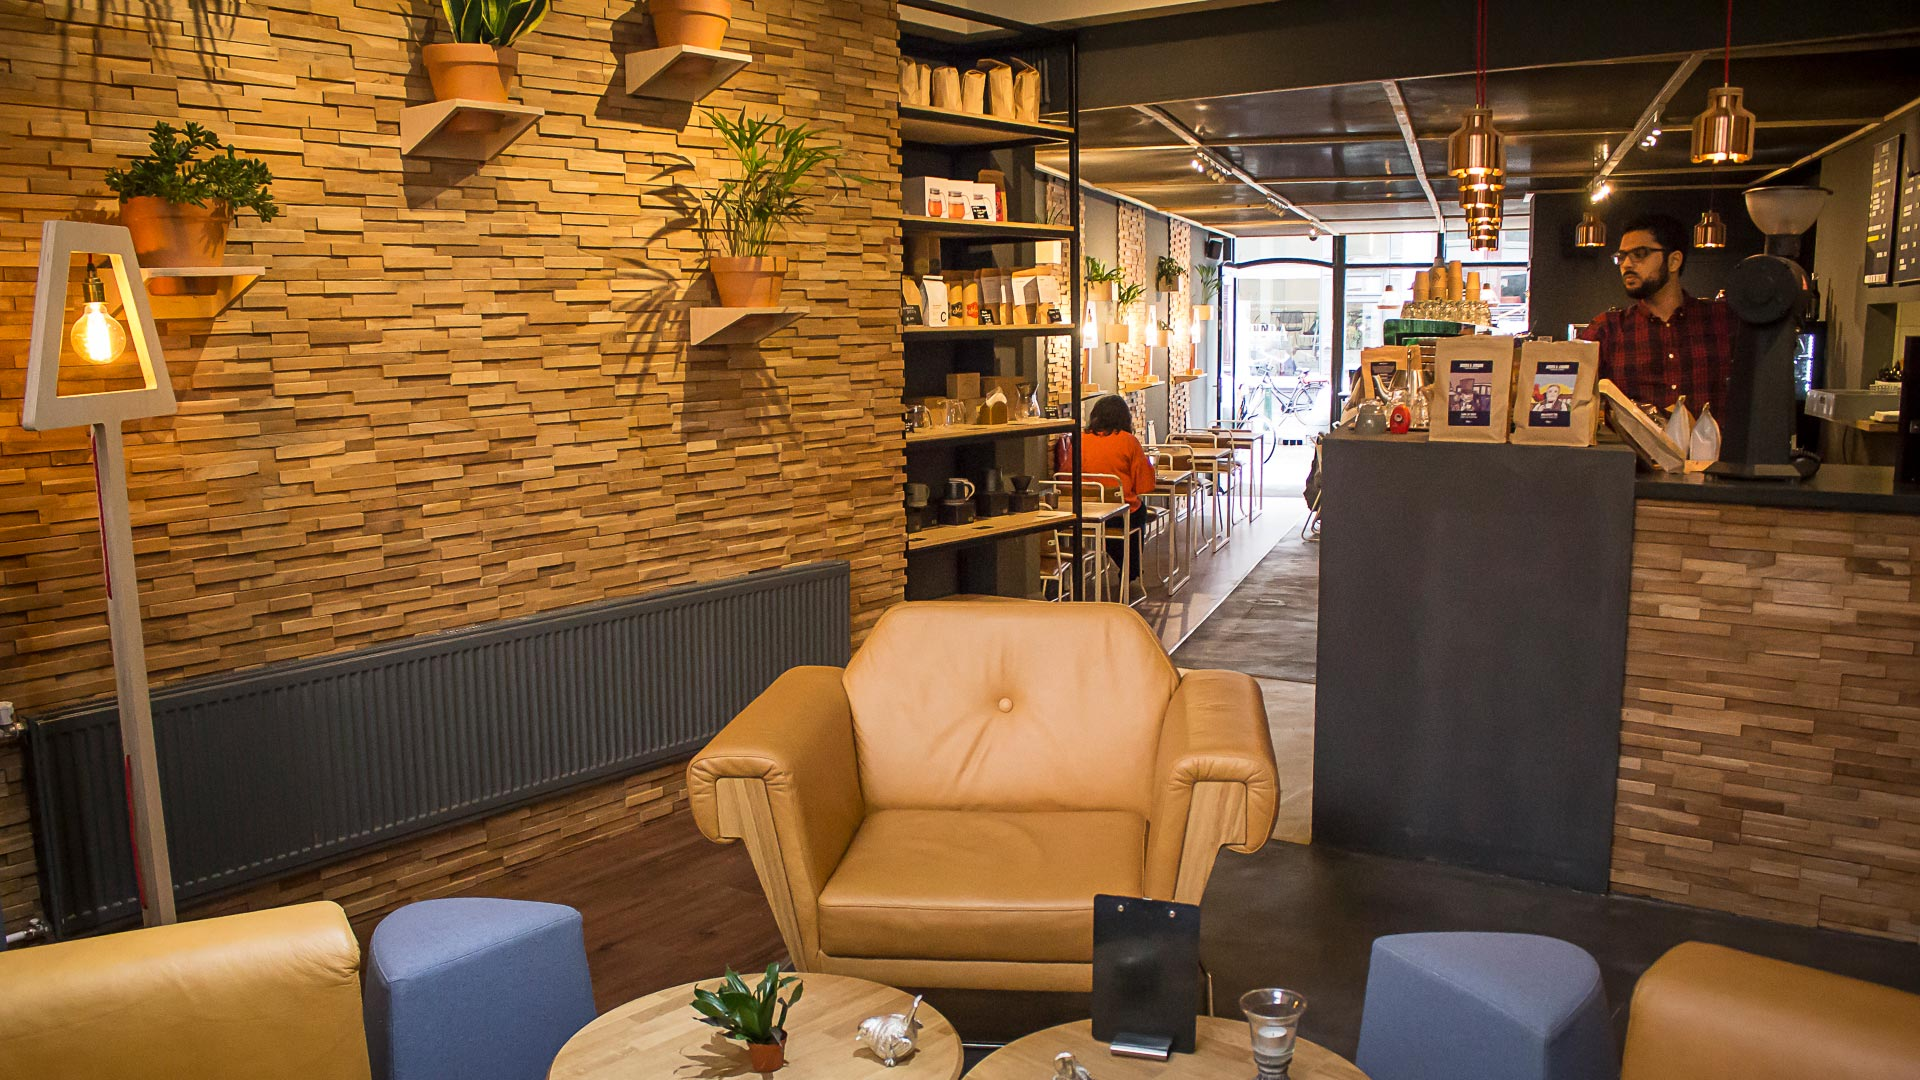 The Kaafi coffee shop in The Hague designed and installed by Liqui. Interior view showing Hove Club Chairs in leather with Darla Stools, a Symbol Light and Studio Coffee Table.